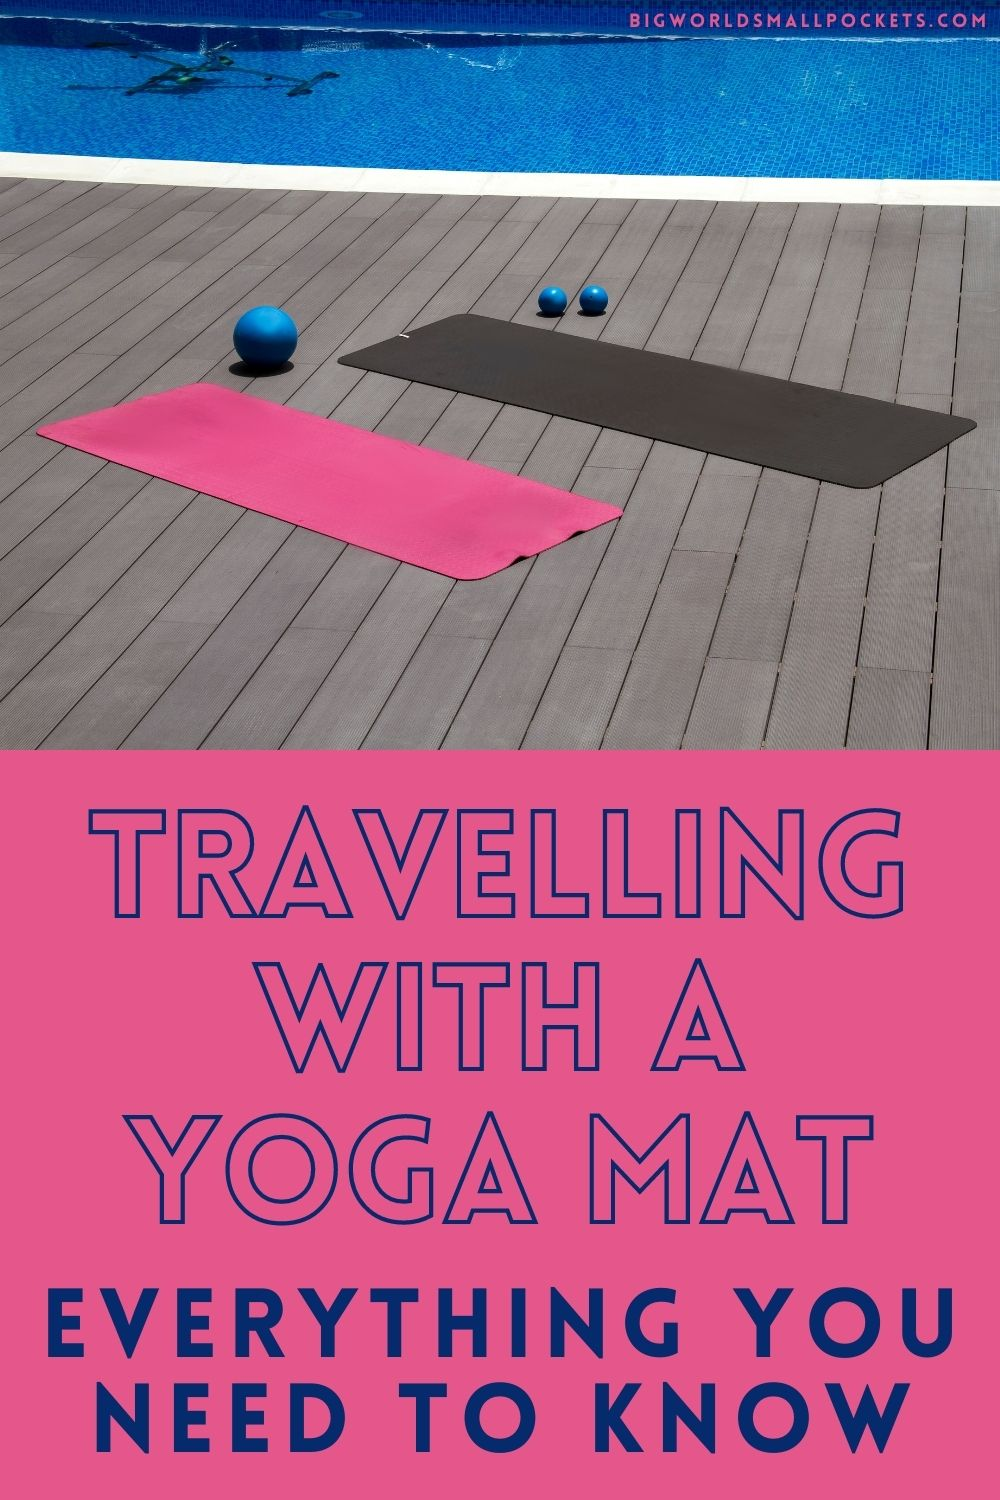 All You Need to Know About Travelling with a Yoga Mat